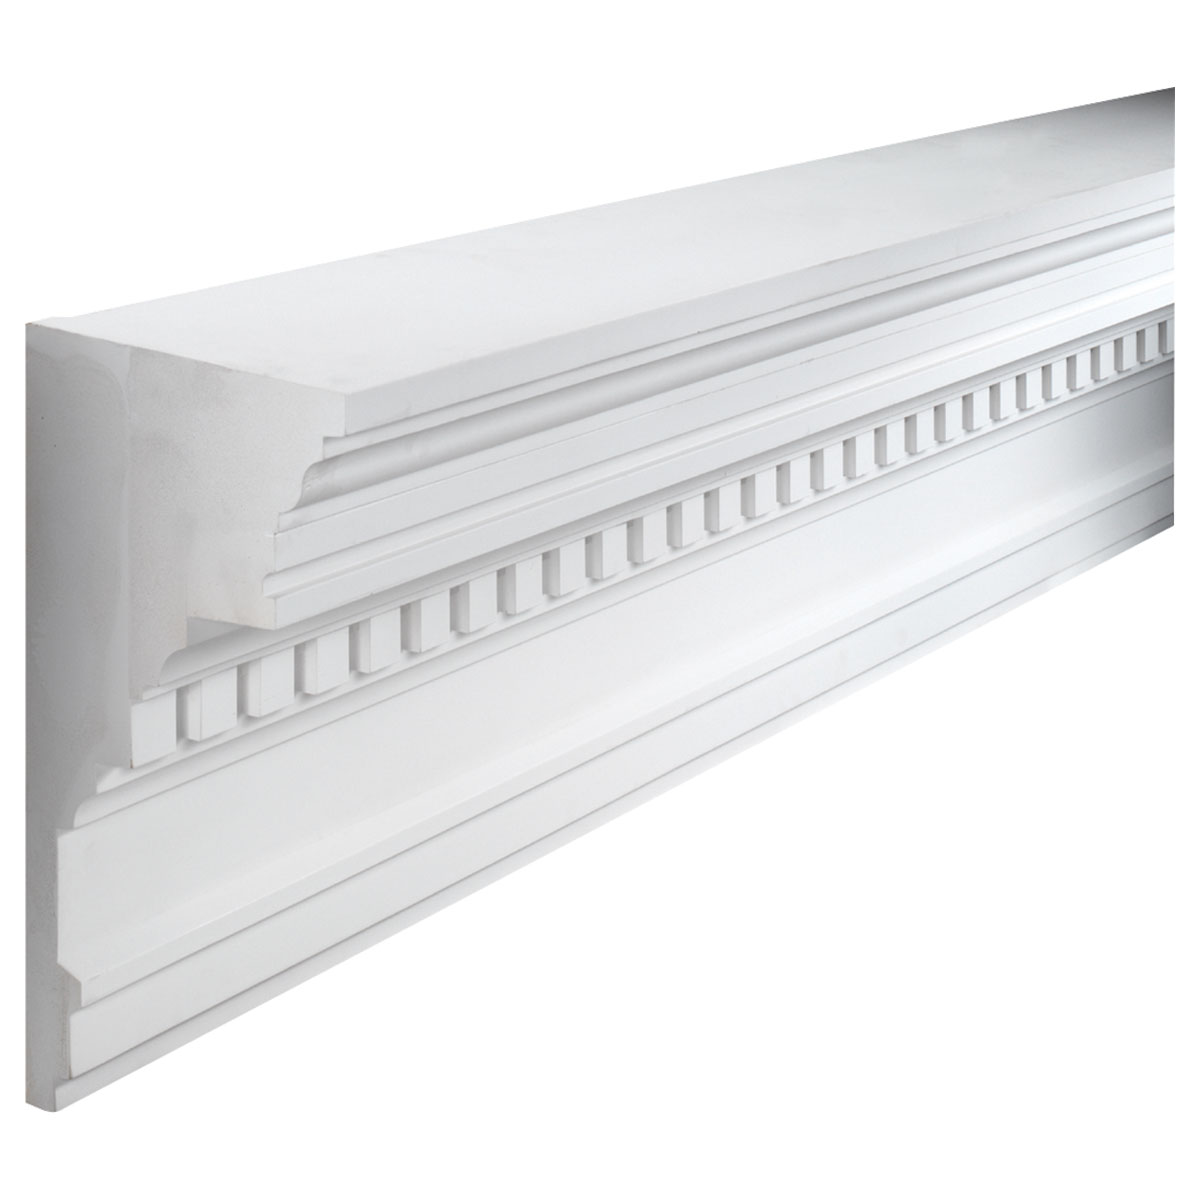 Fypon ltd mld461 8 19 inch w x 9 1 2 inch p 8 39 length cr for Fypon molded millwork